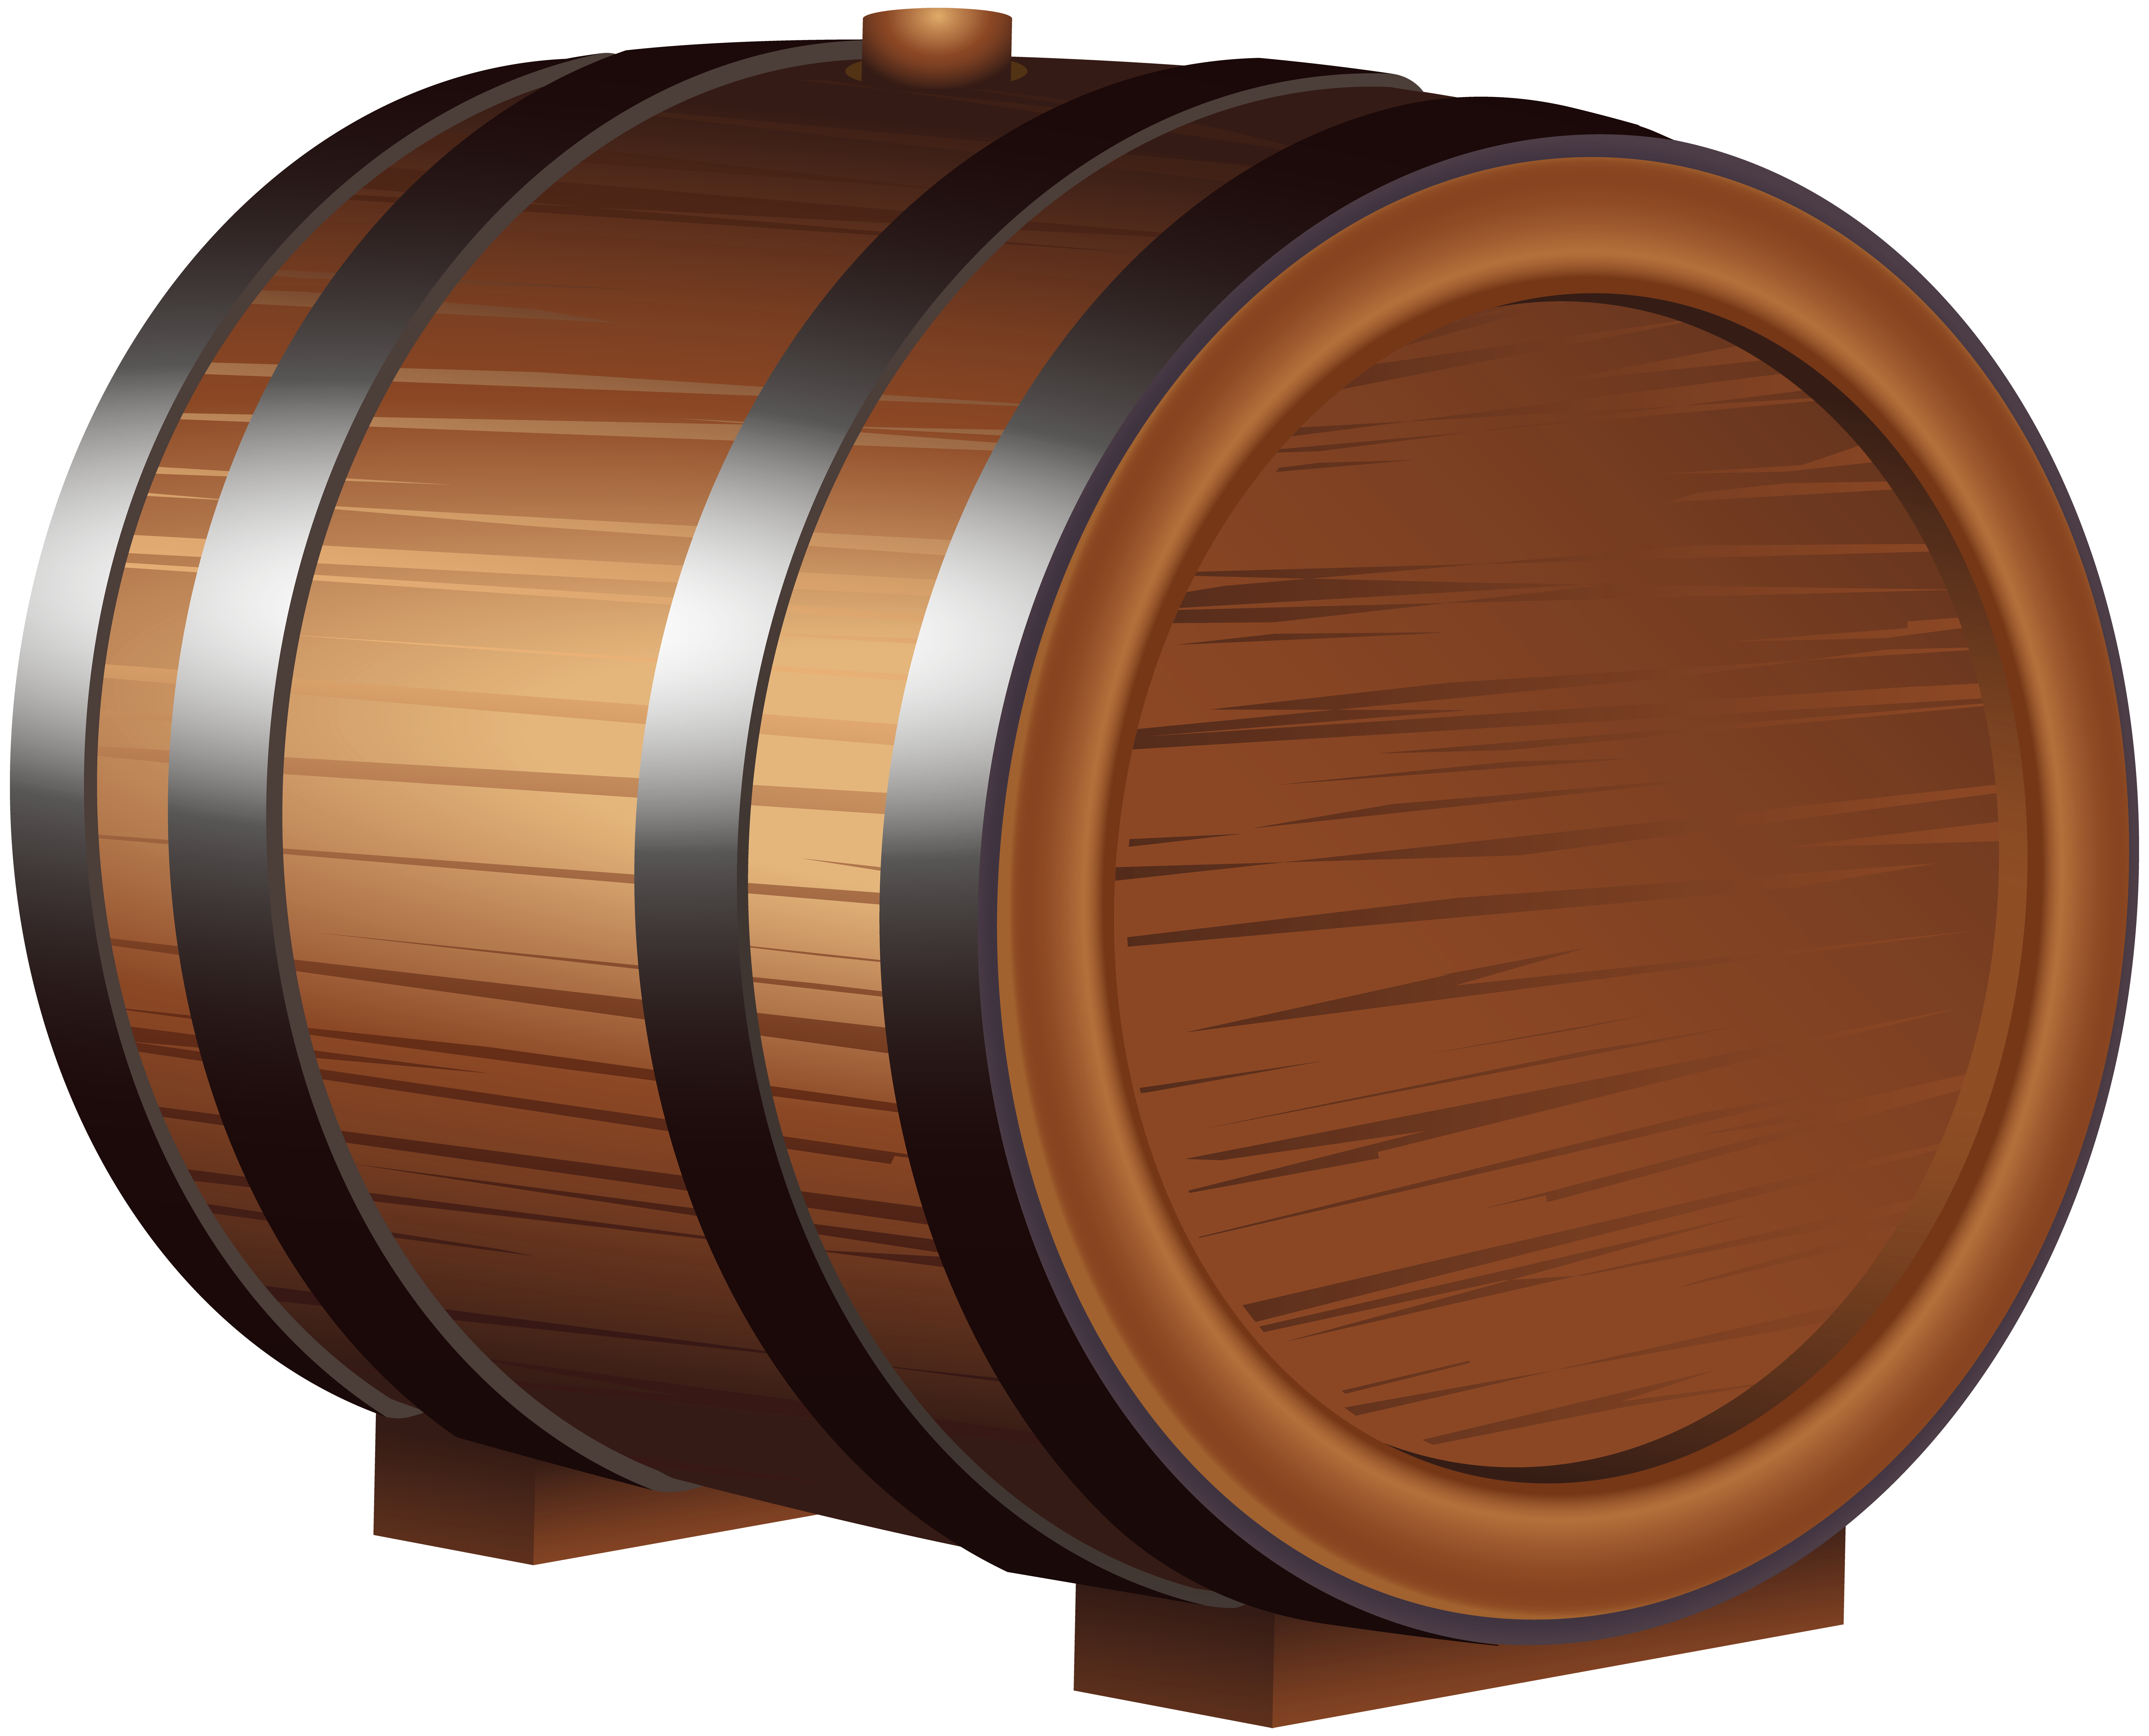 image freeuse stock Barrel clipart. Wooden png clip art